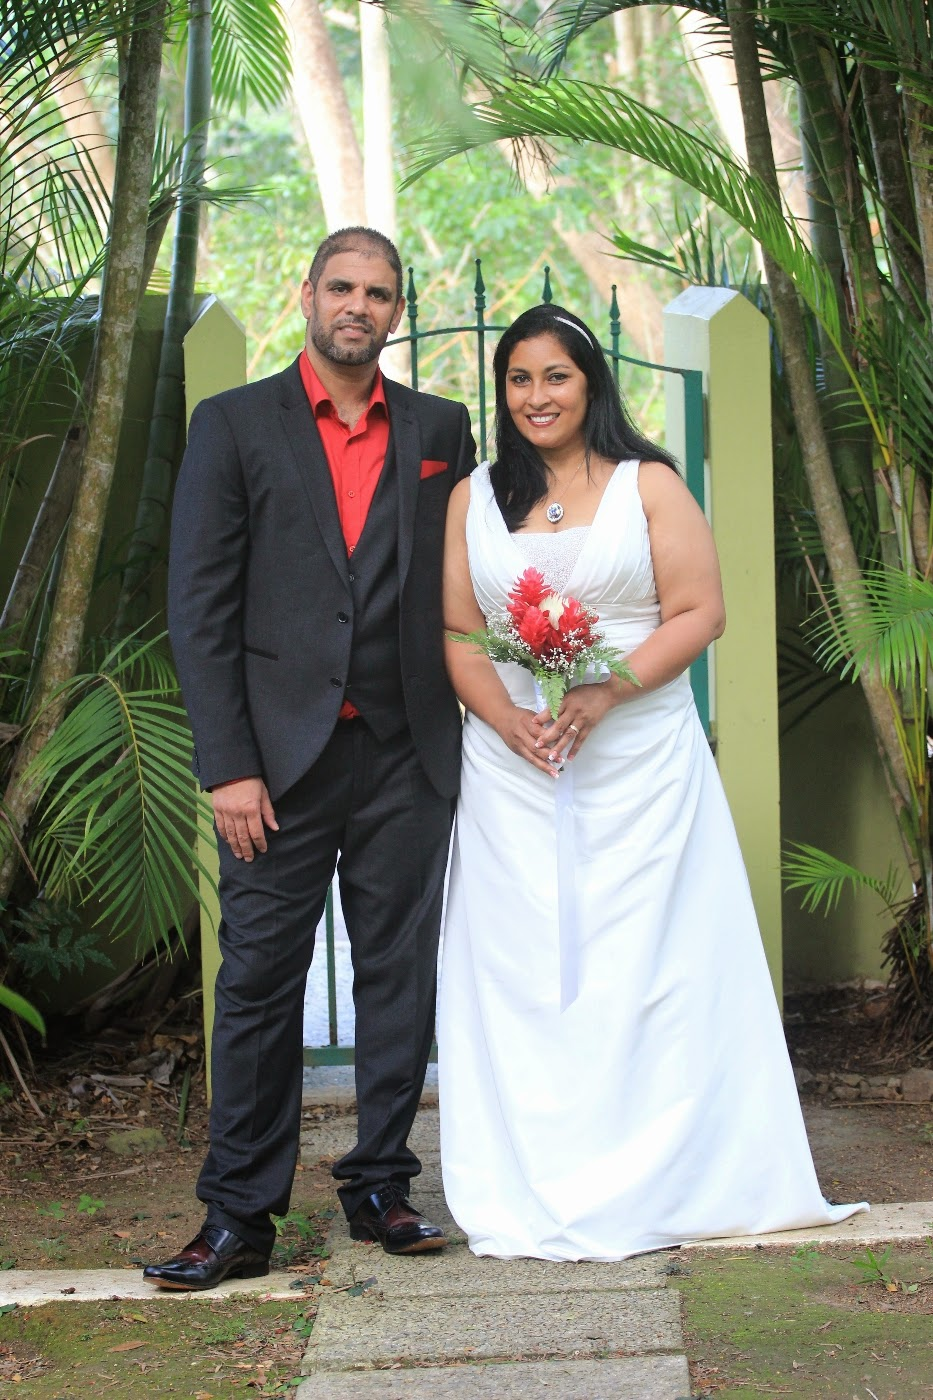 garden wedding venues Trinidad & Tobago